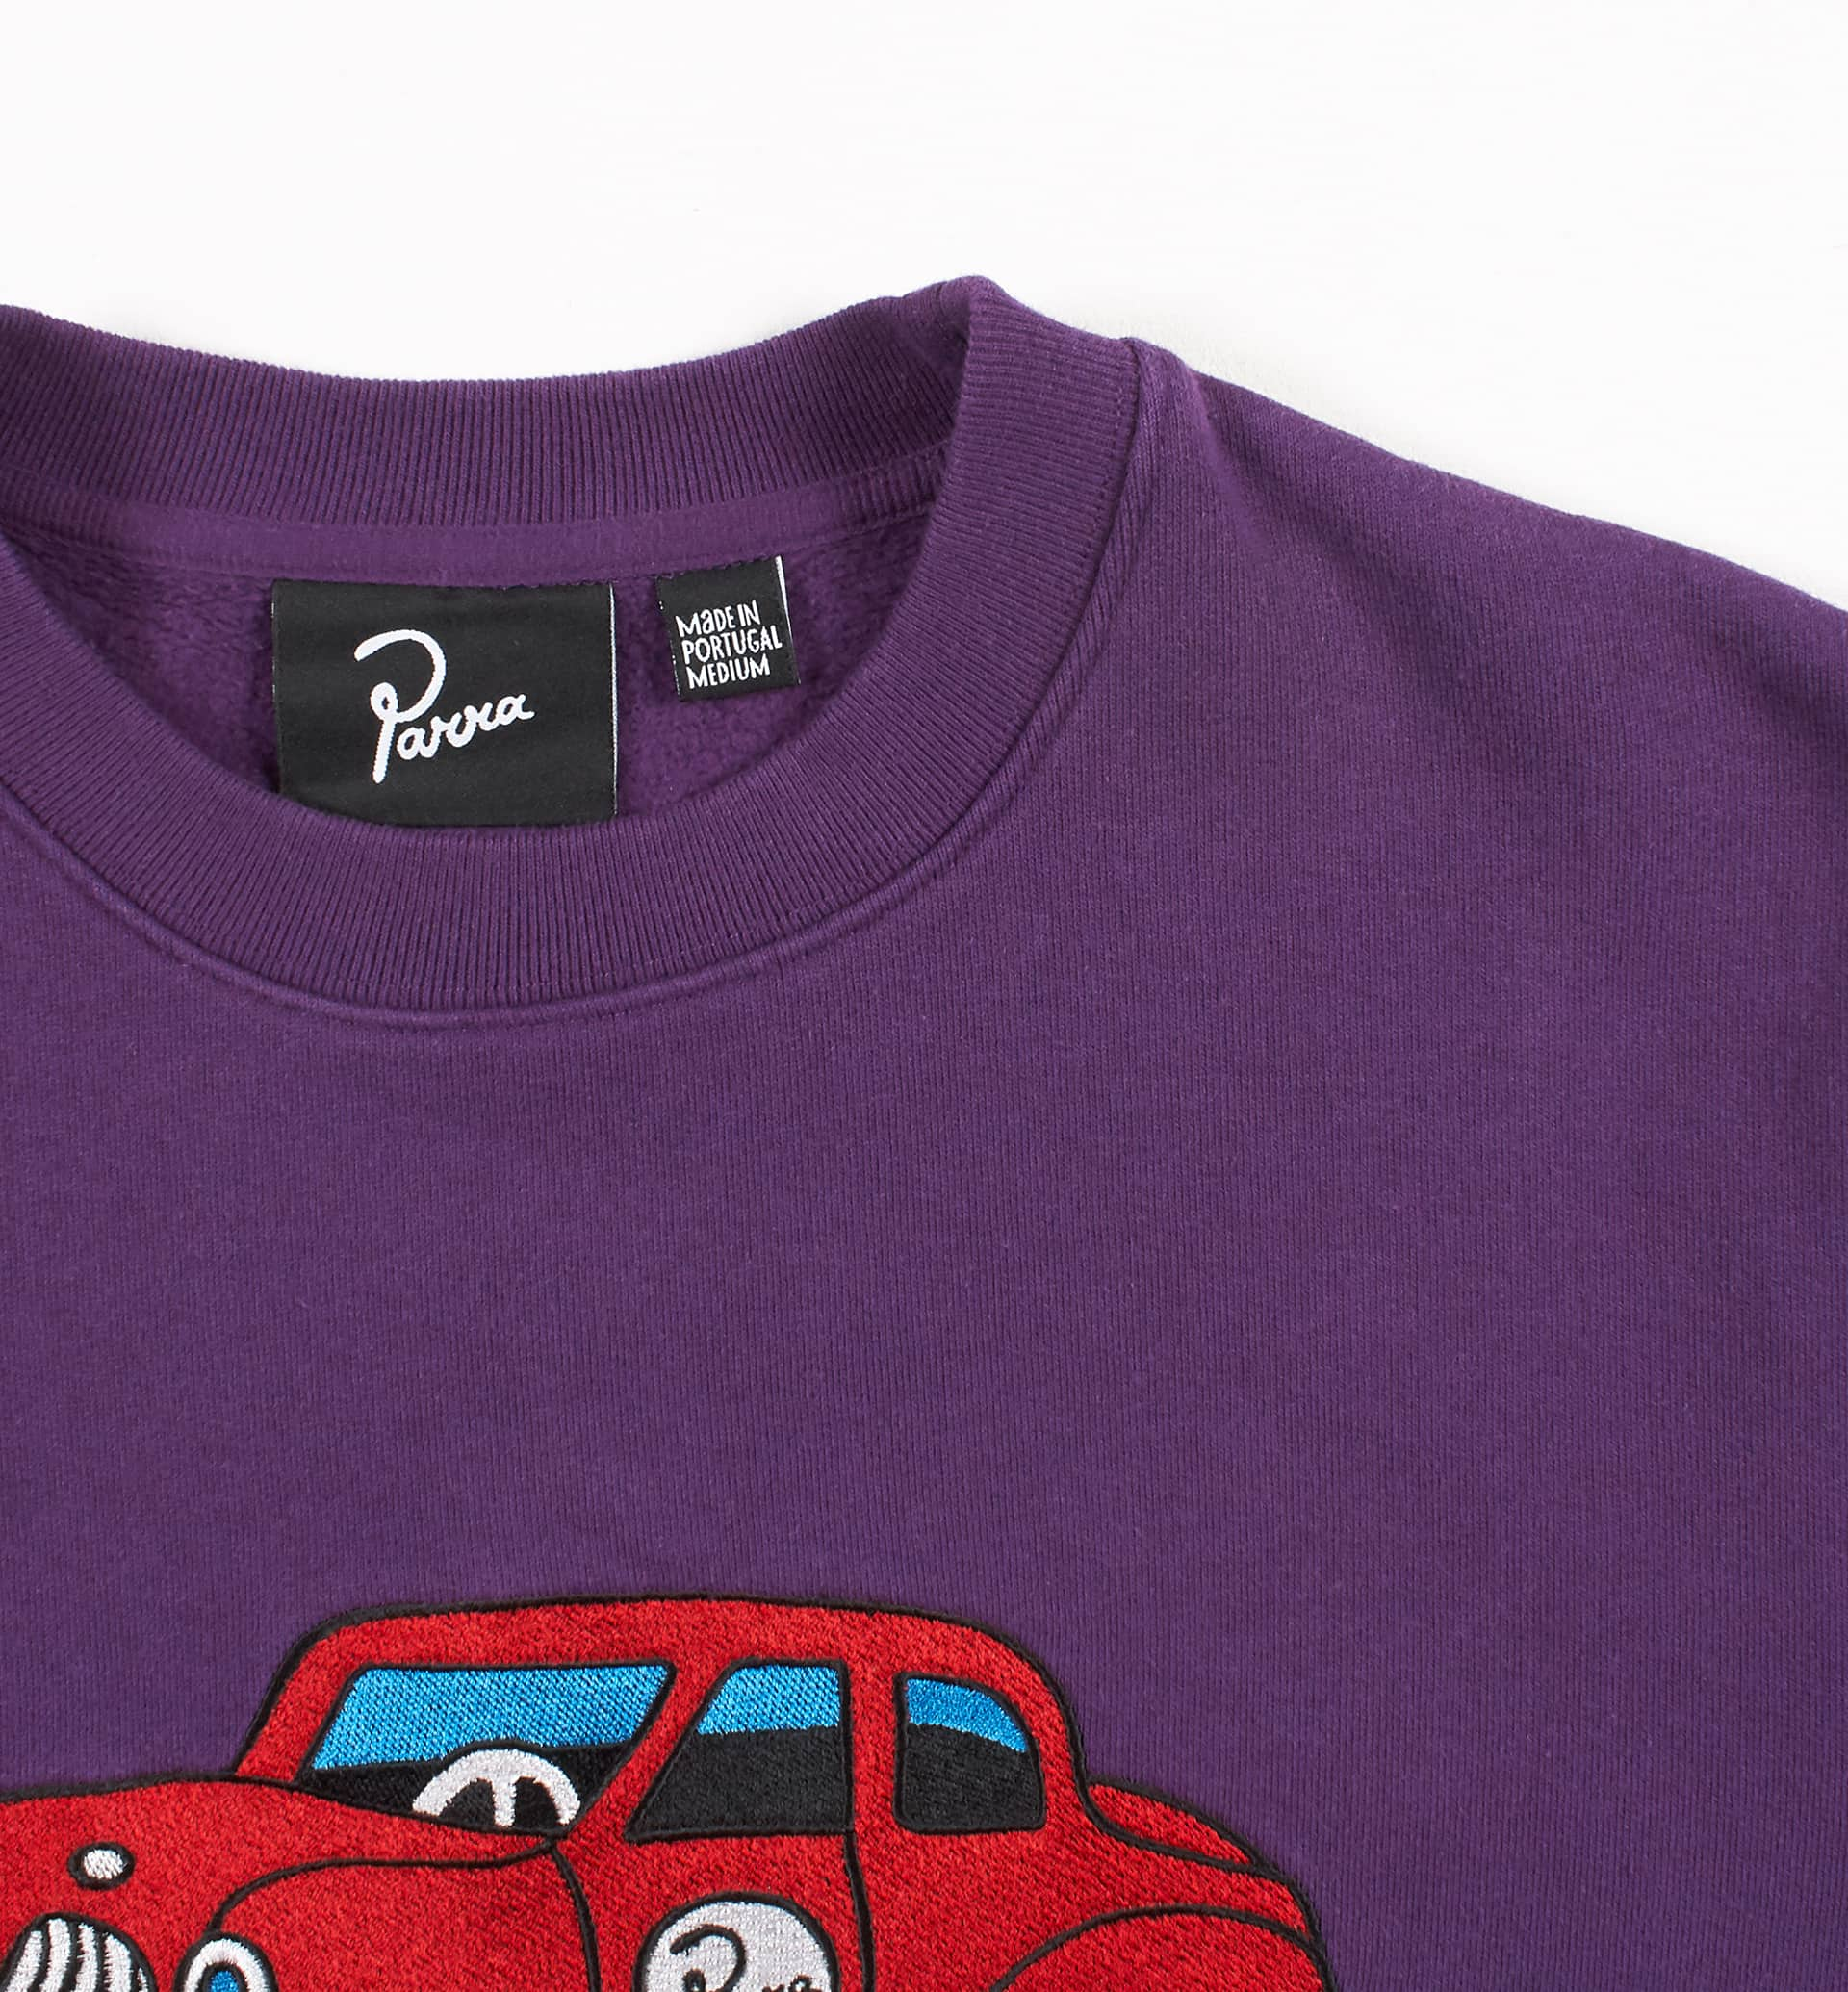 Parra - toy car crewneck sweatshirt